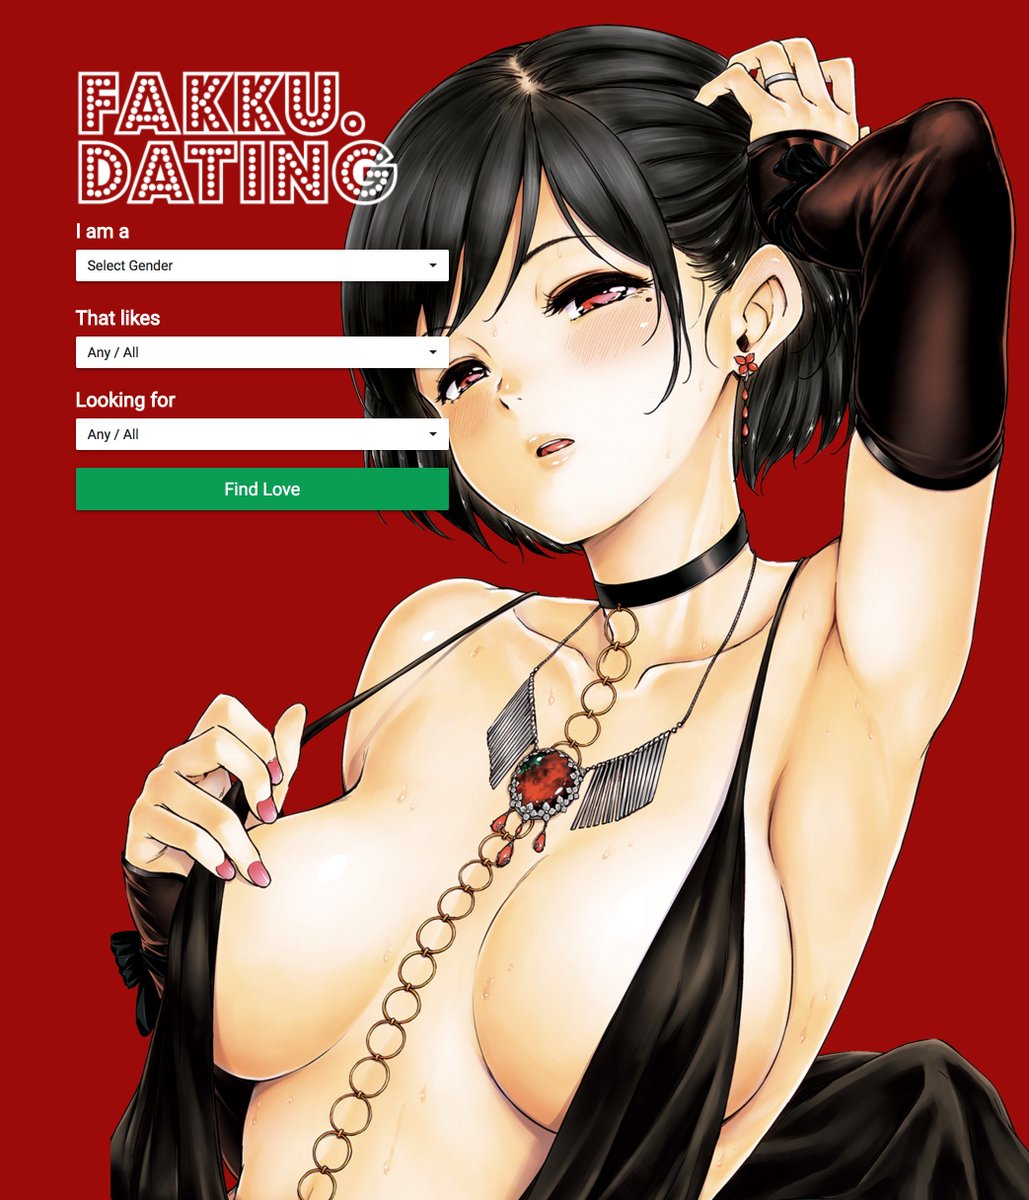 Websites like fakku